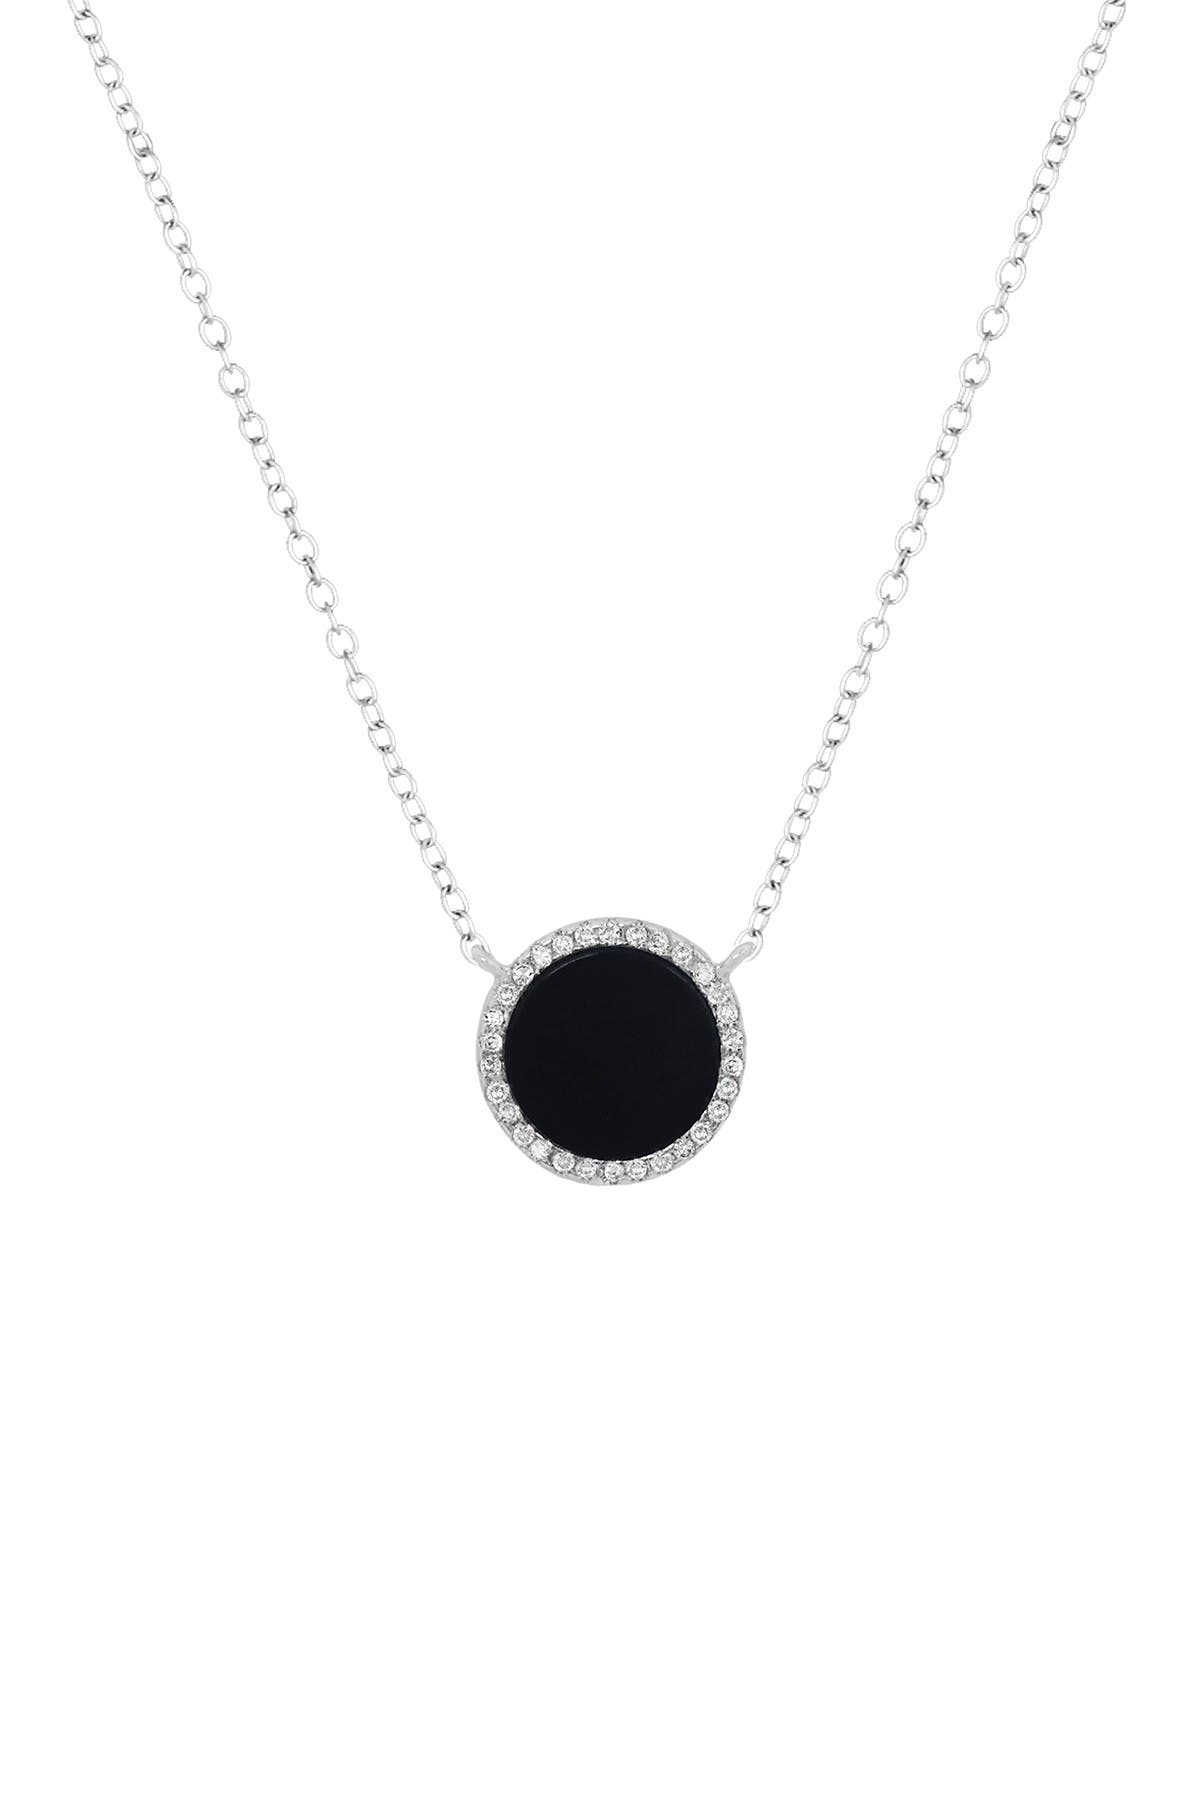 Image of Savvy Cie Sterling Silver Black Onyx & Cubic Zirconia Halo Necklace